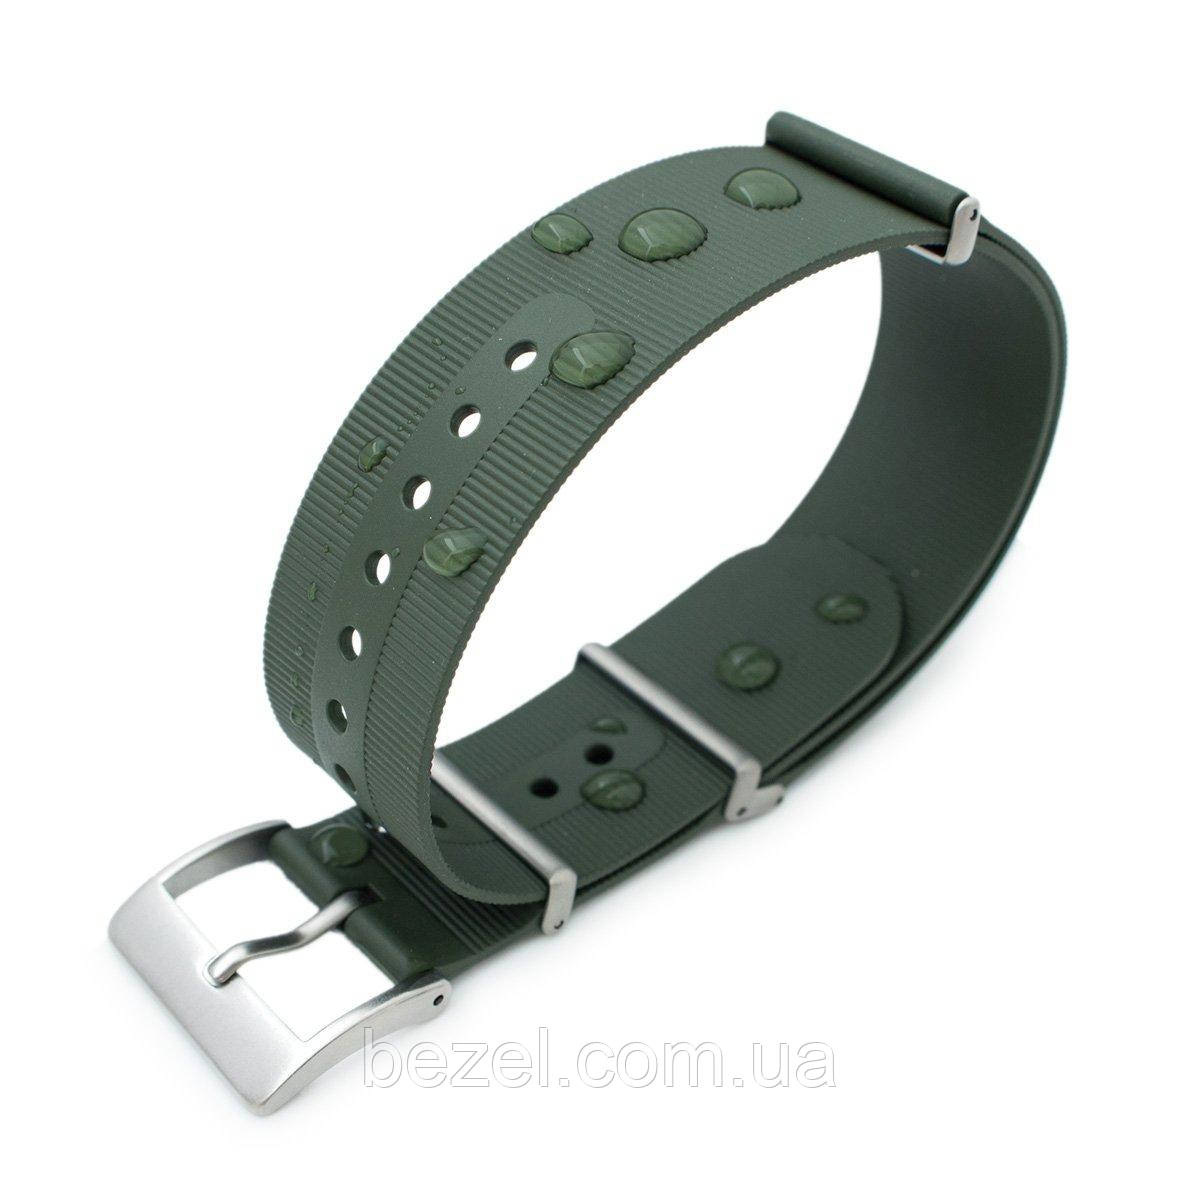 Rubber NATO 22mm G10 Waterproof Watch Band, Military Green, Sandblasted Buckle